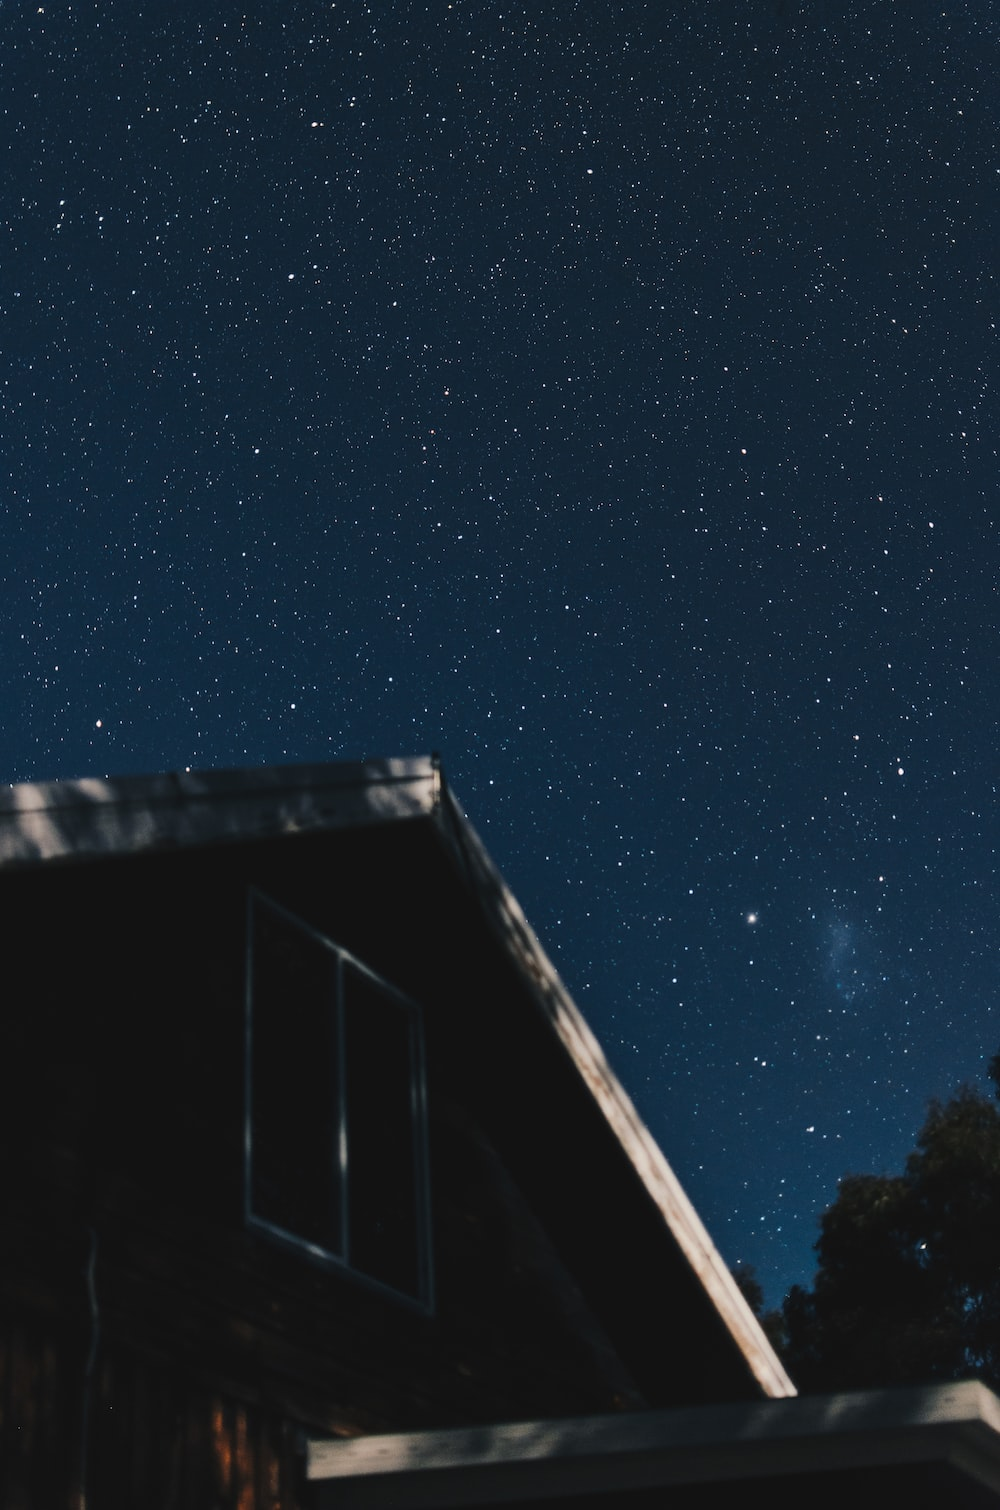 best 100 midnight pictures download free images on unsplash